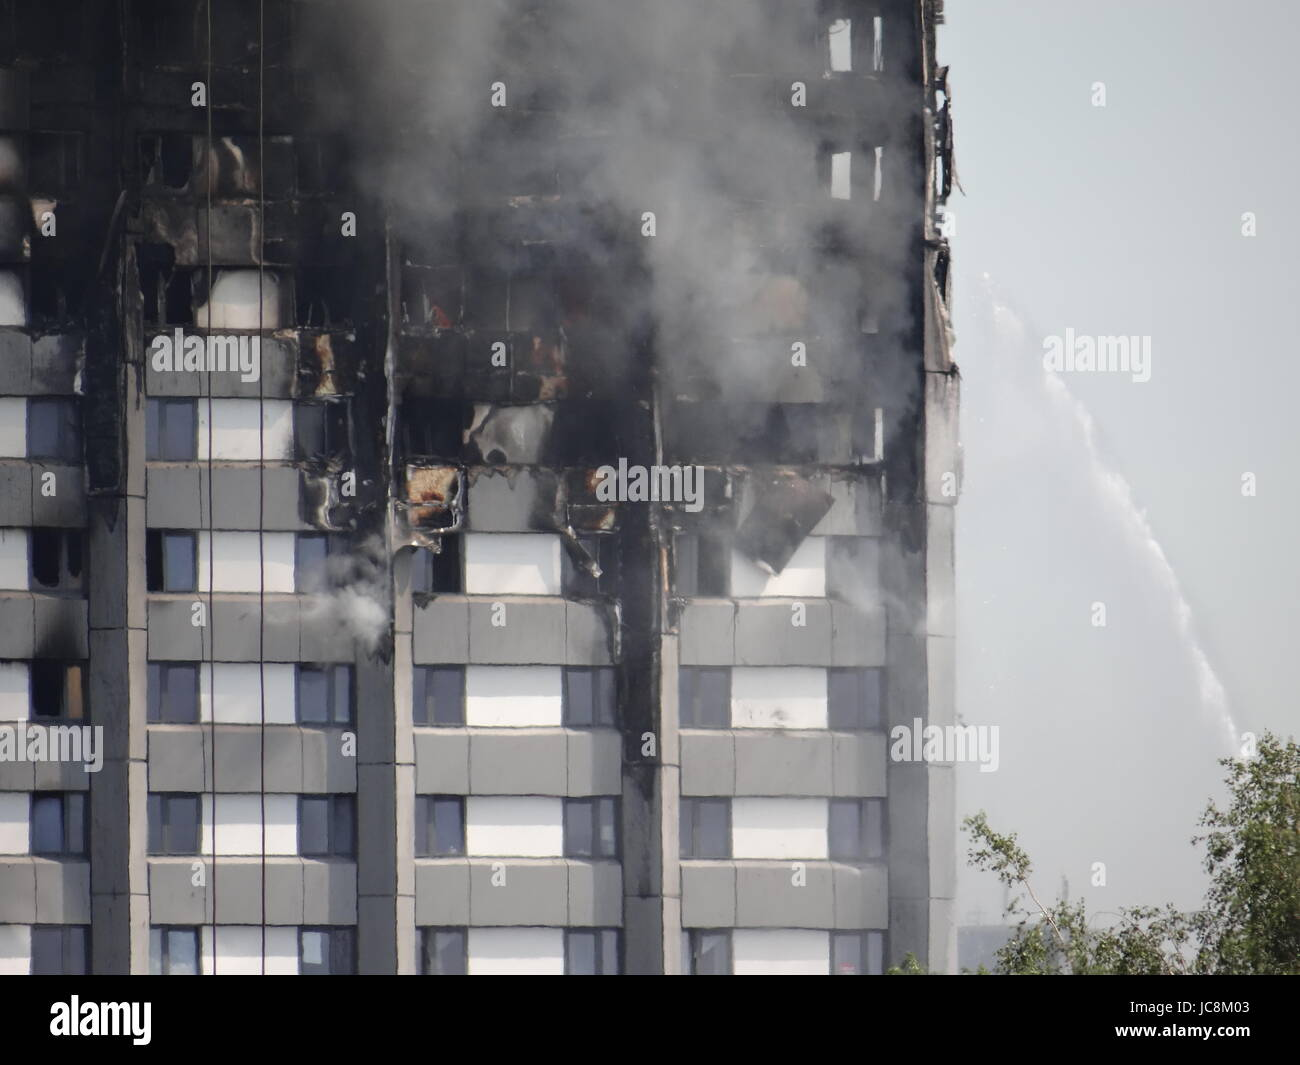 London, UK. 14th June, 2017. Fire fighters are trying to stop he fire in West London where the Grenfell Tower was - Stock Image